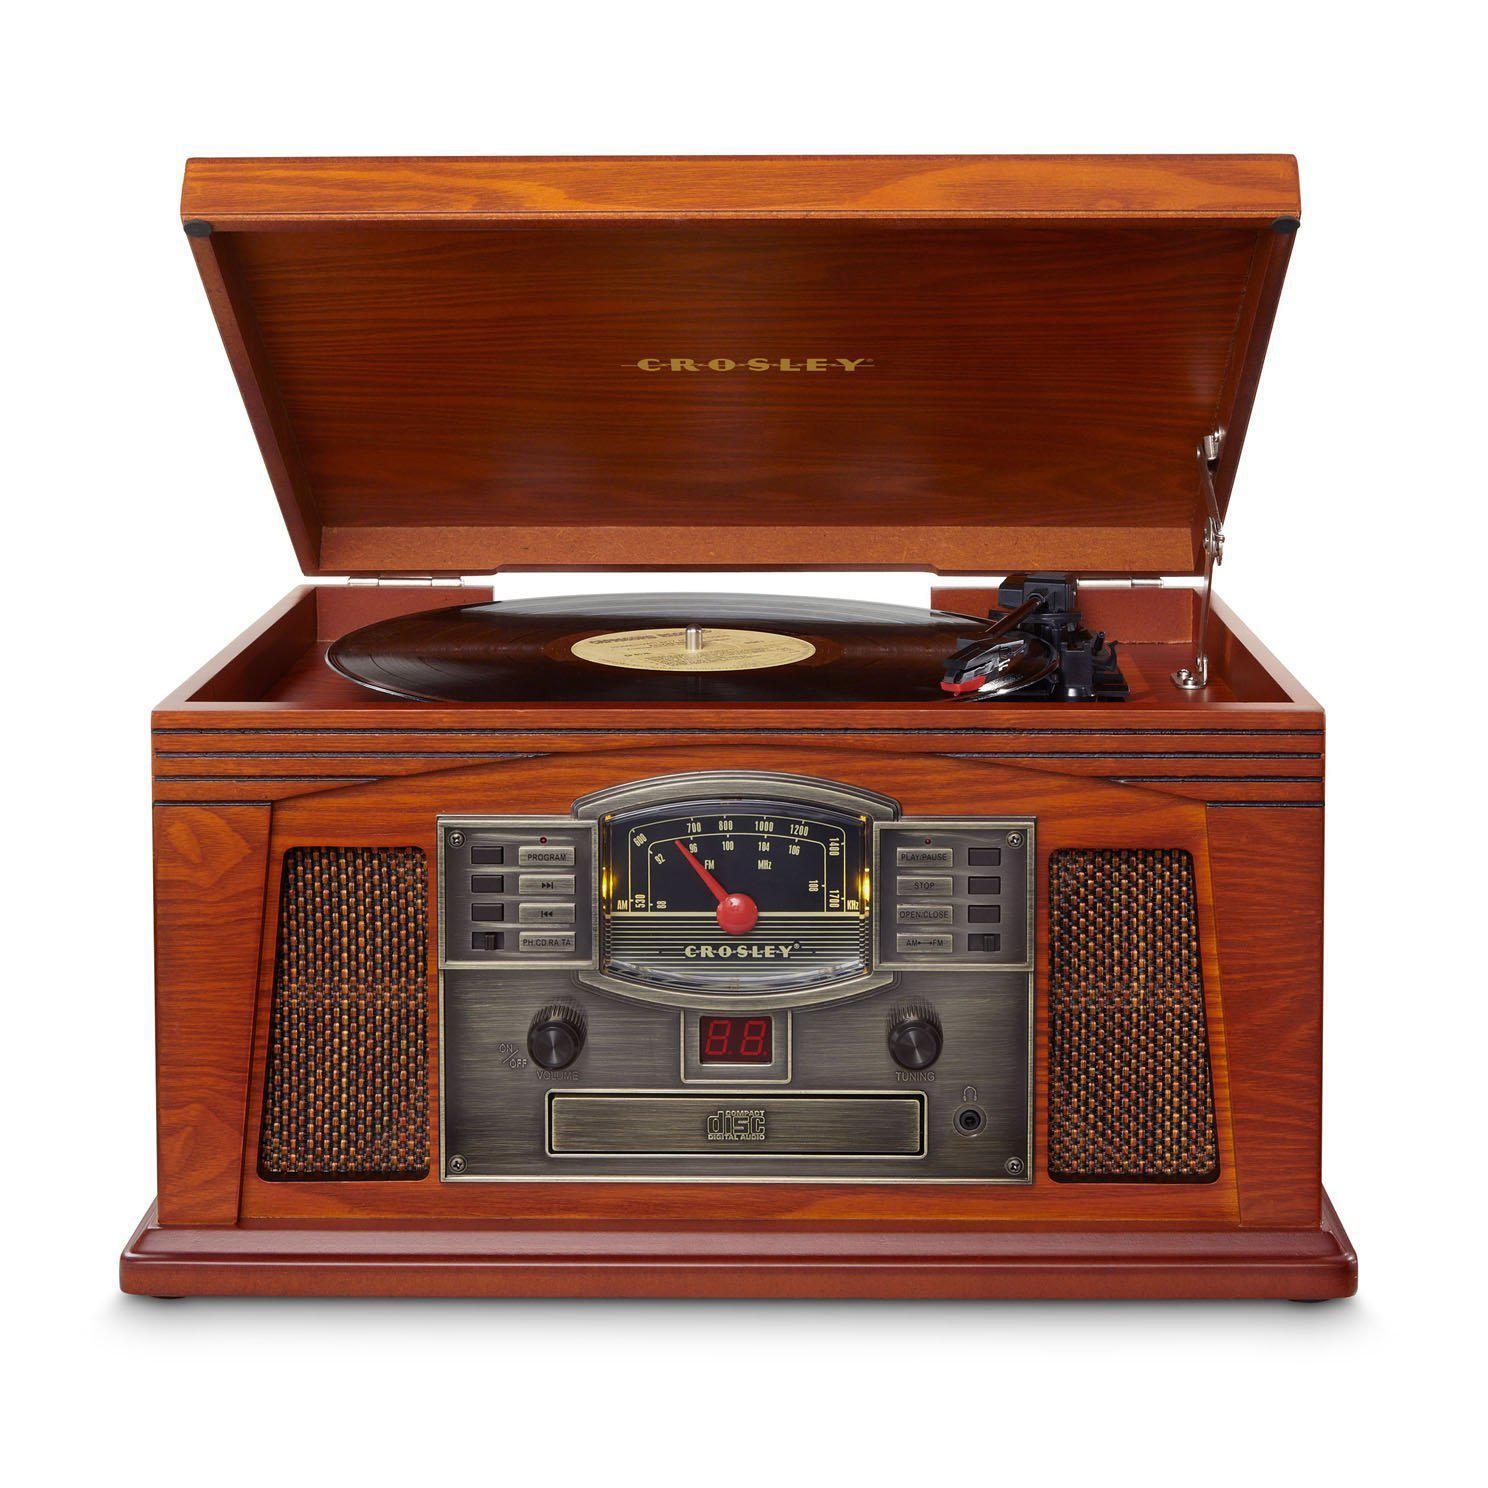 Crosley Lancaster Turntable with Bluetooth (in) - Paprika-Cubox Australia